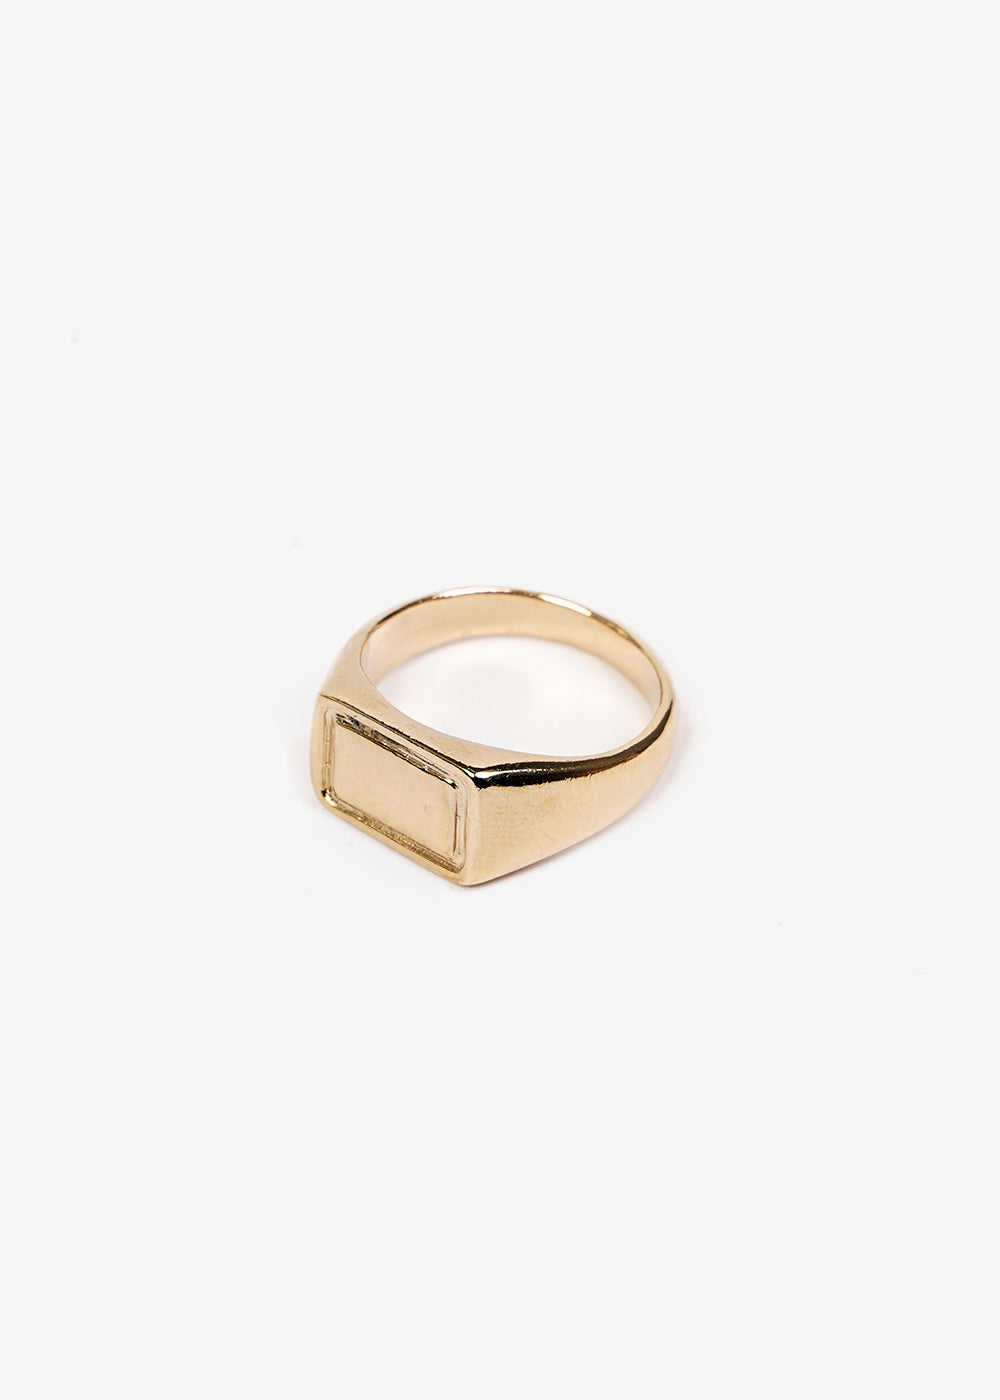 Wolf Circus Parker Singet Ring — Shop sustainable fashion and slow fashion at New Classics Studios